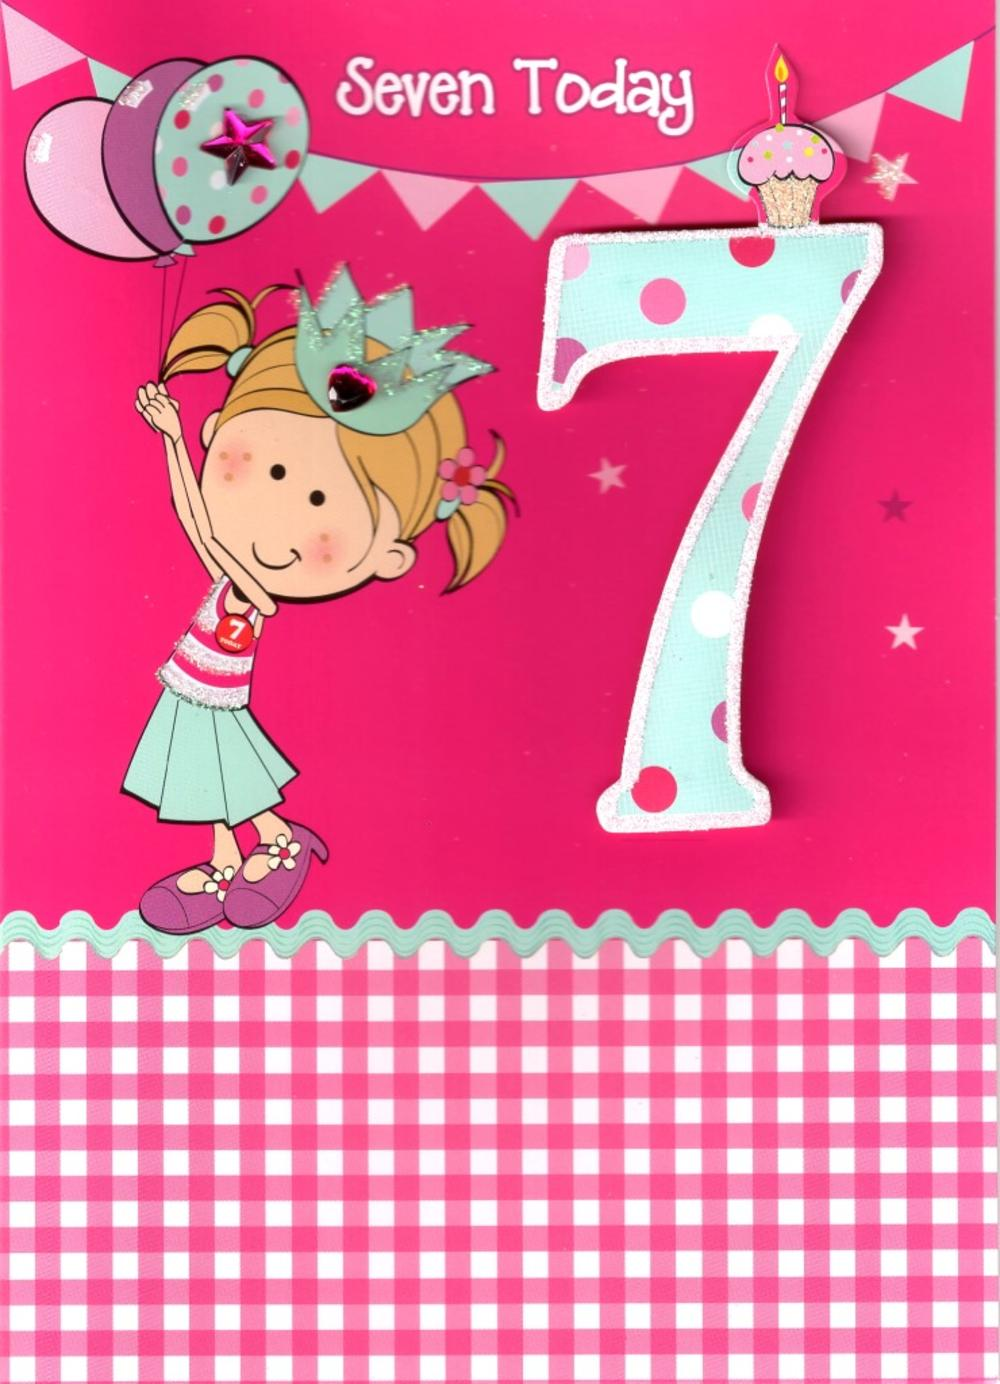 Girls 7th birthday 7 seven today card cards love kates girls 7th birthday 7 seven today card bookmarktalkfo Images